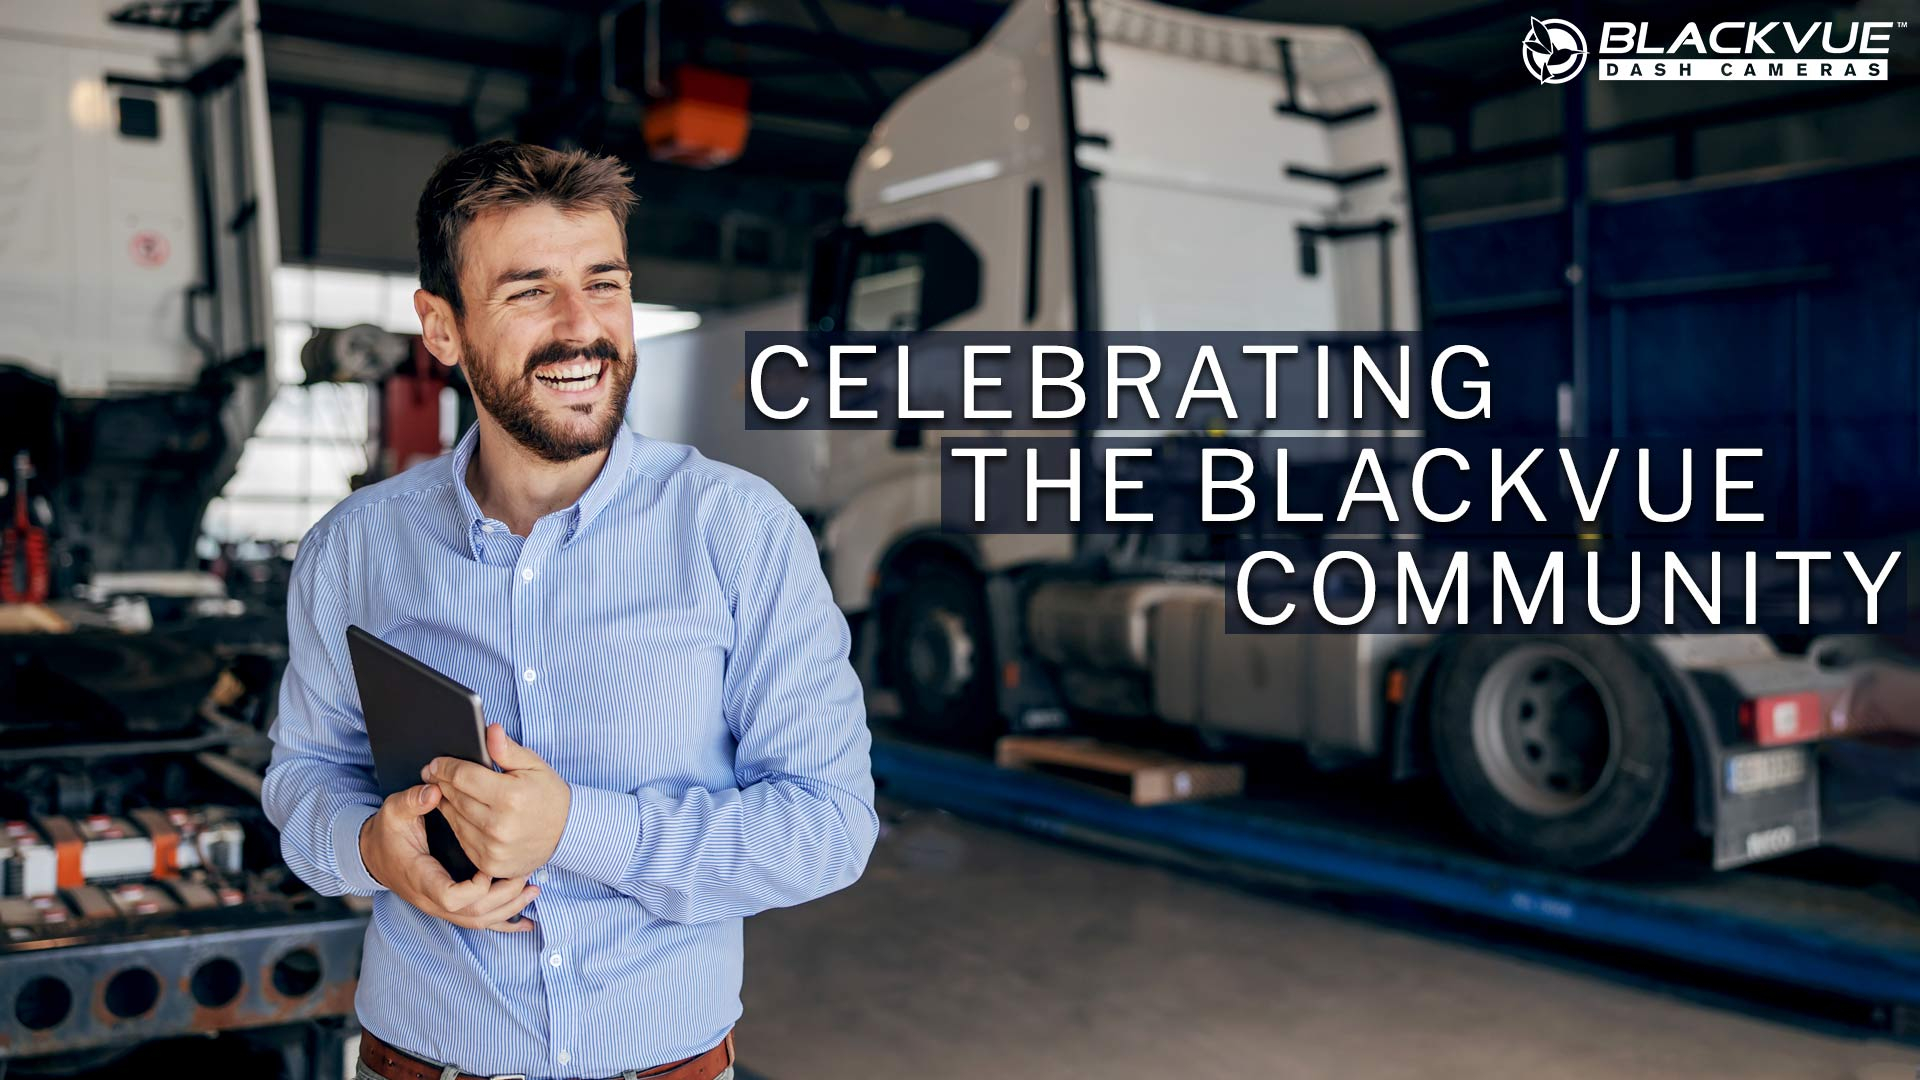 Celebrating the BlackVue Community on Our 14th Anniversary